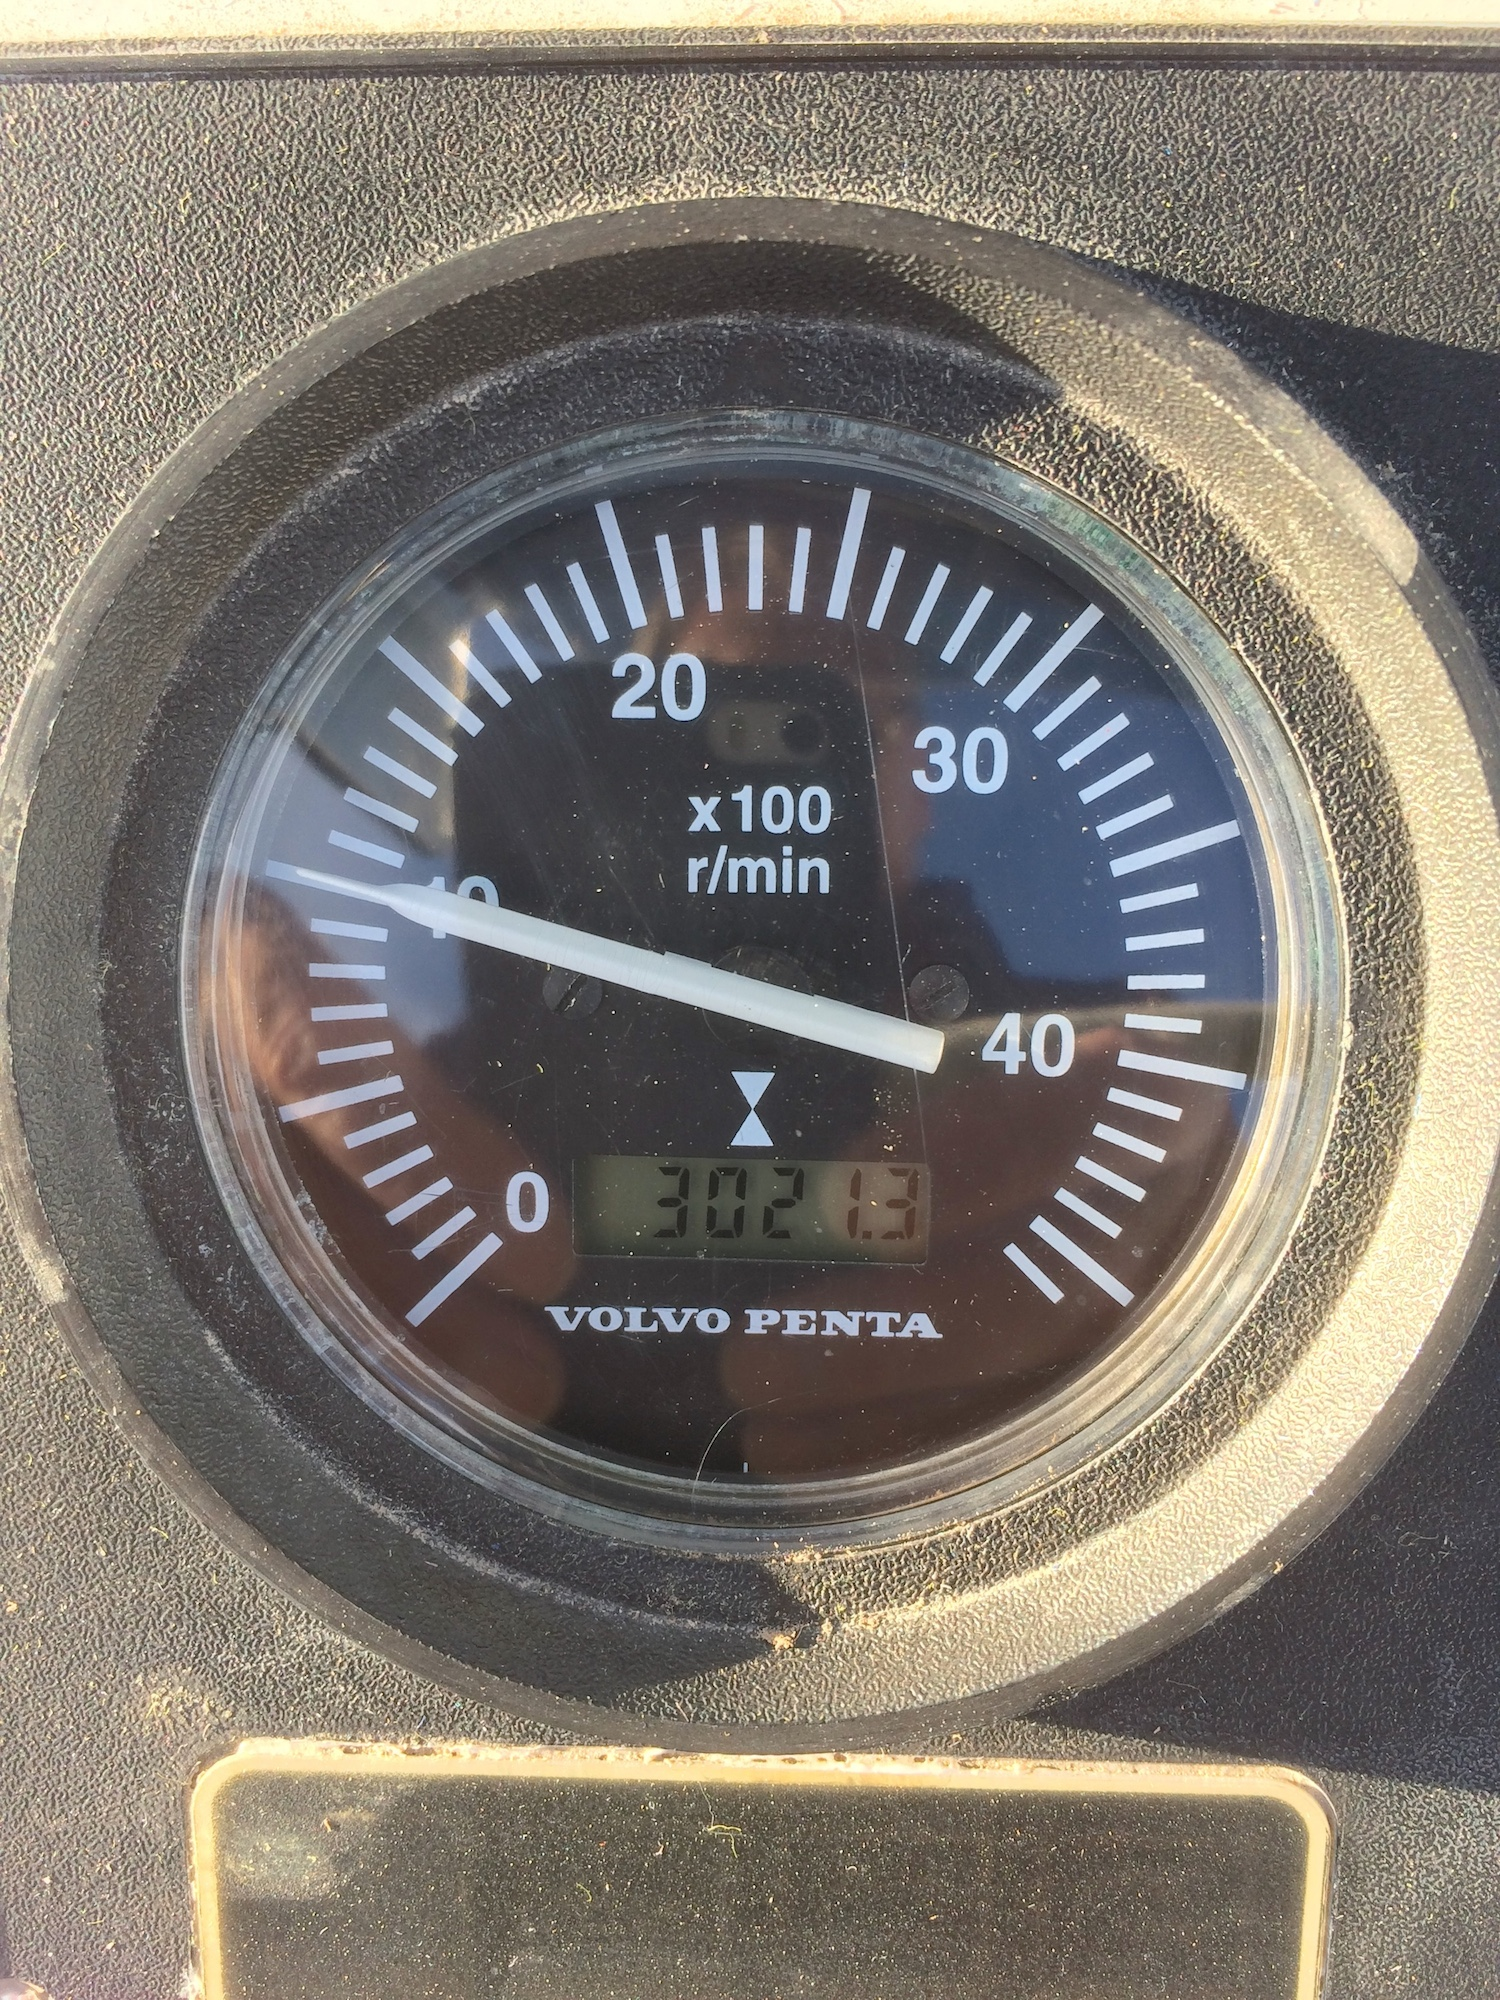 VDO Tacho / Hour Meter Repair   Sailboat Owners Forums on